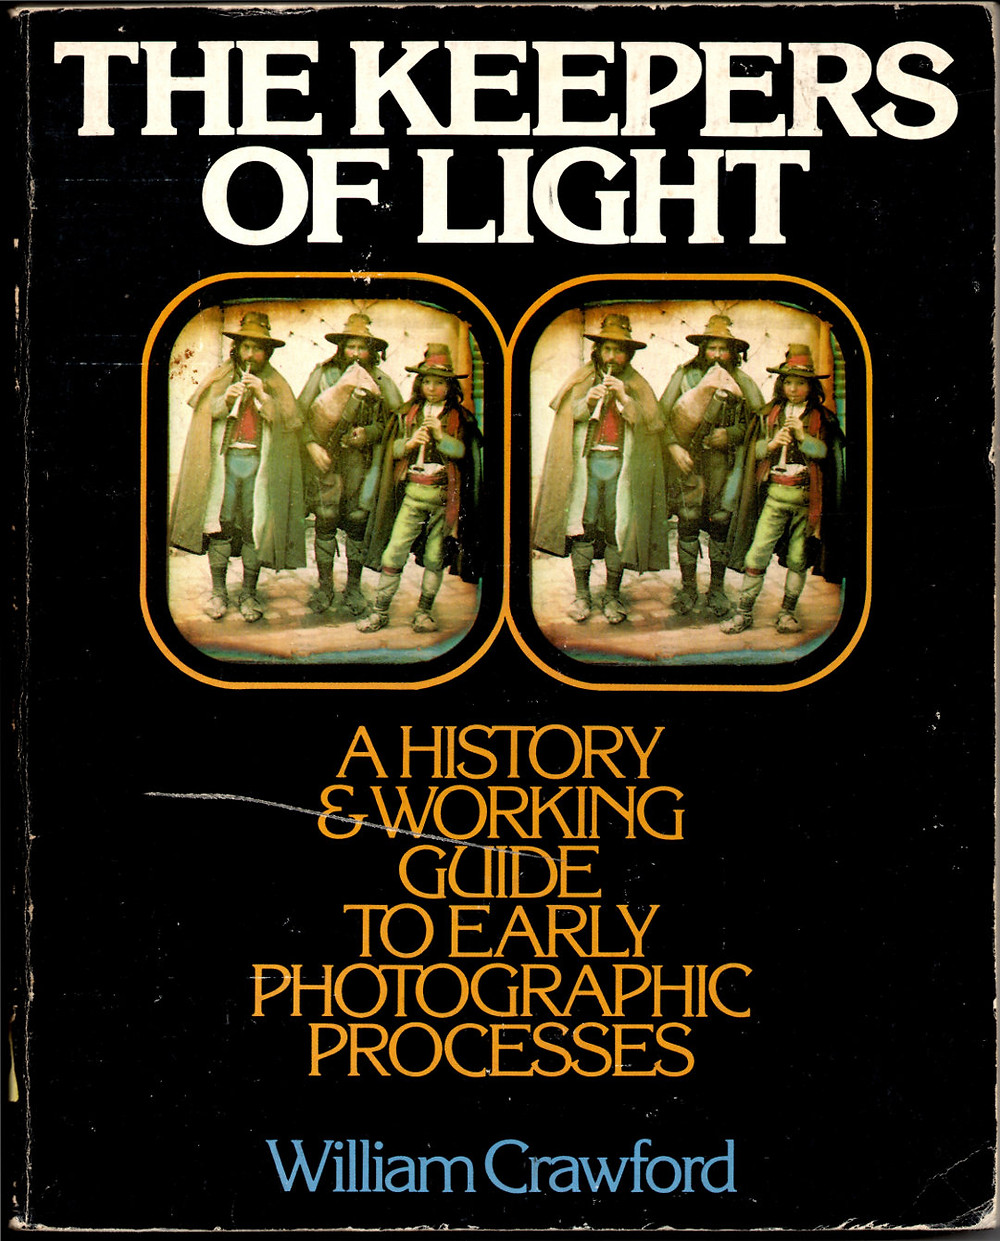 Cover of The Keepers of Light: A History and Working Guide to Early Photographic Processes, by William Crawford.